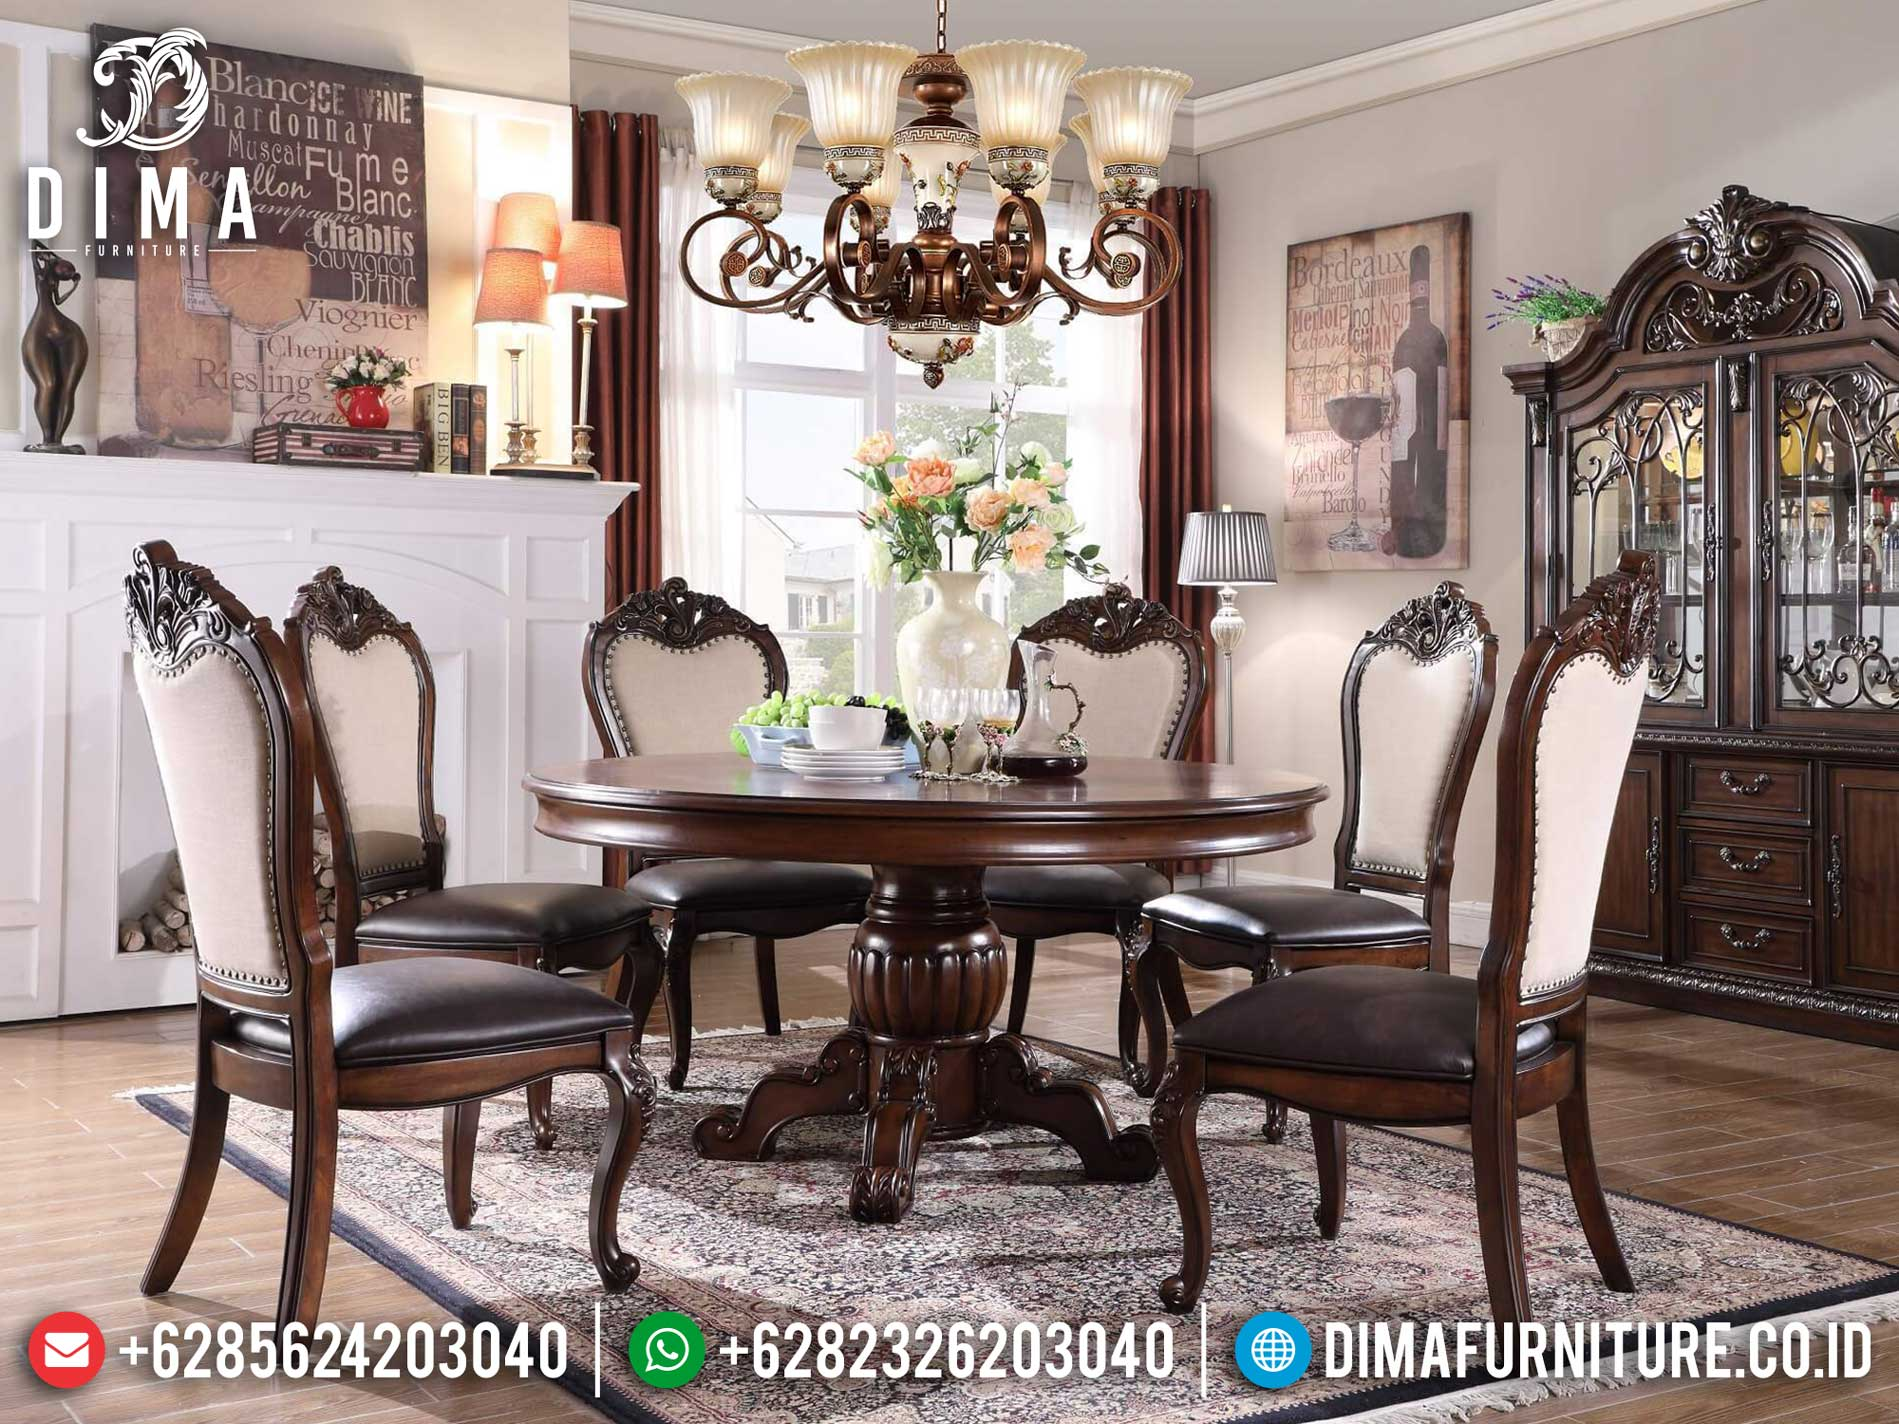 Meja Makan Minimalis Bundar Ukiran Jepara Luxury New Set Dining Room 2021 TTJ-1319